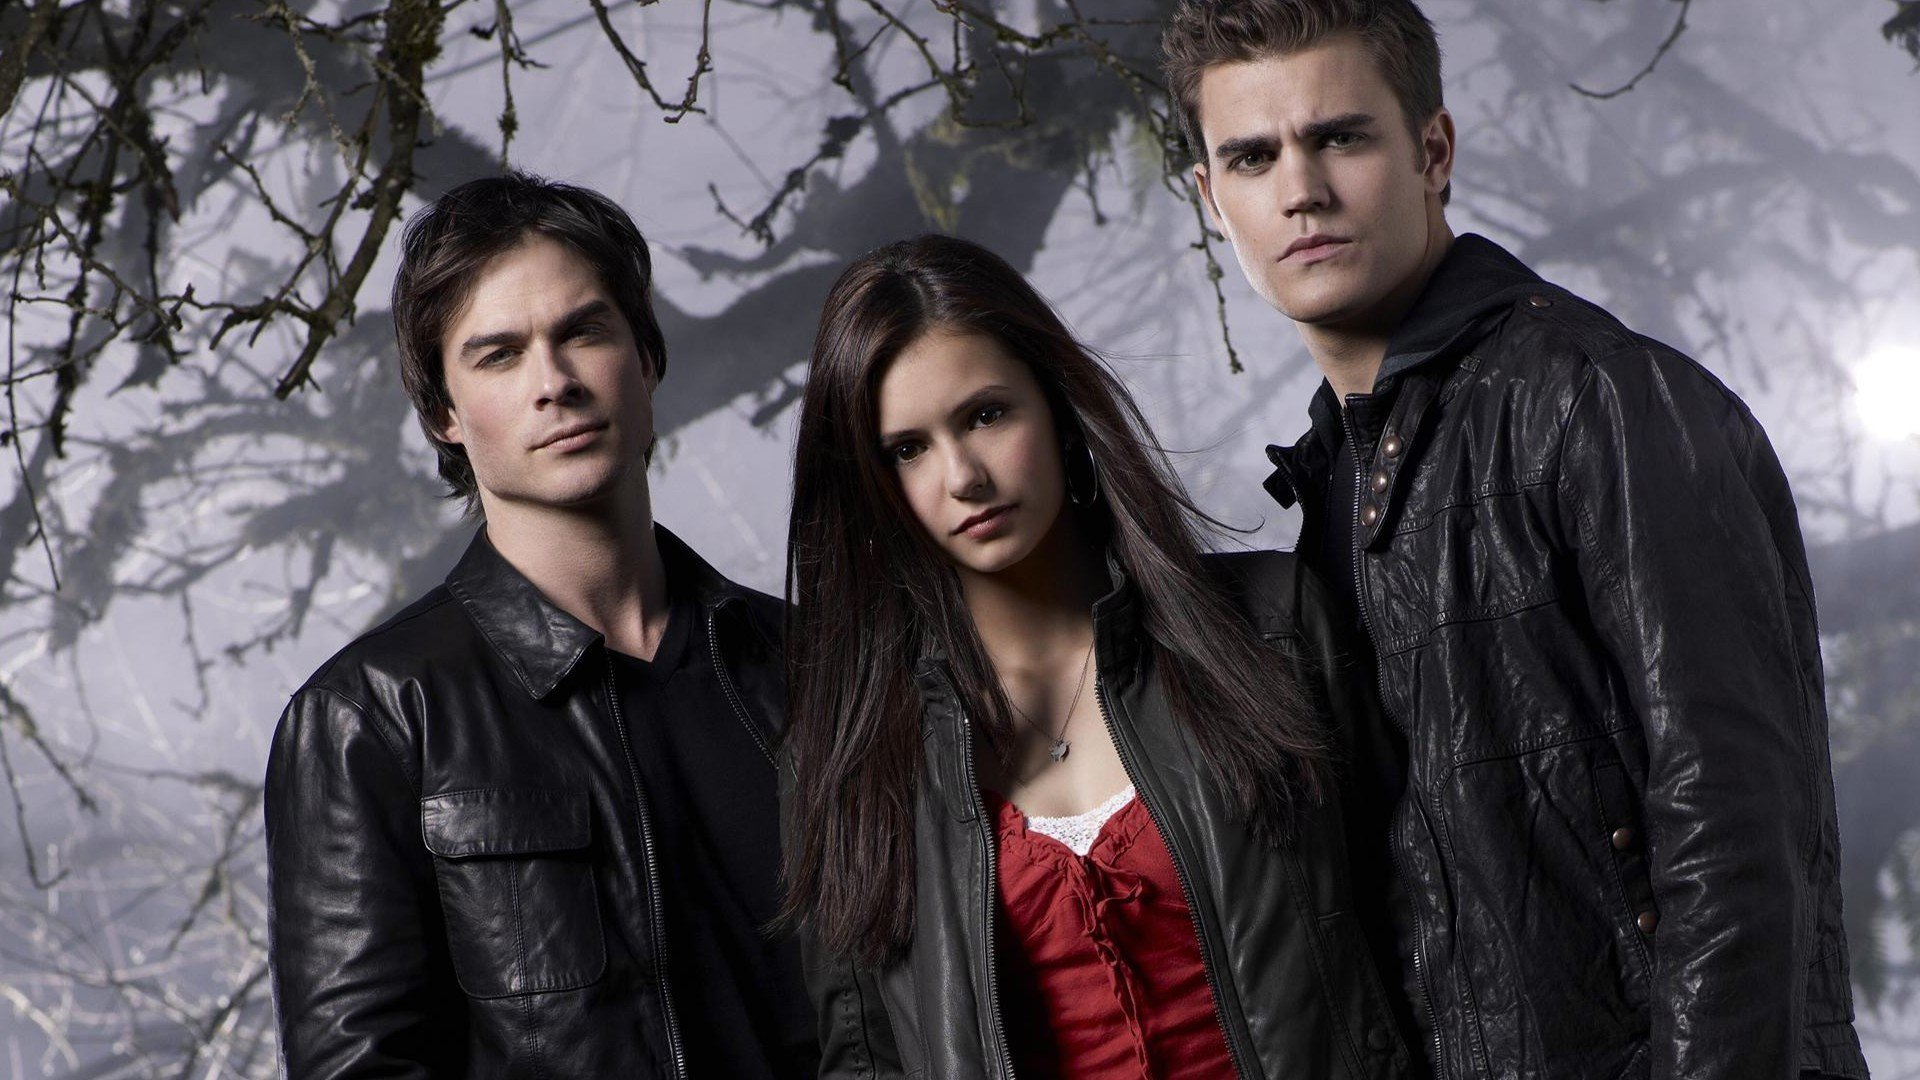 Wallpaper The Vampire Diaries: The Vampire Diaries Wallpapers, Pictures, Images